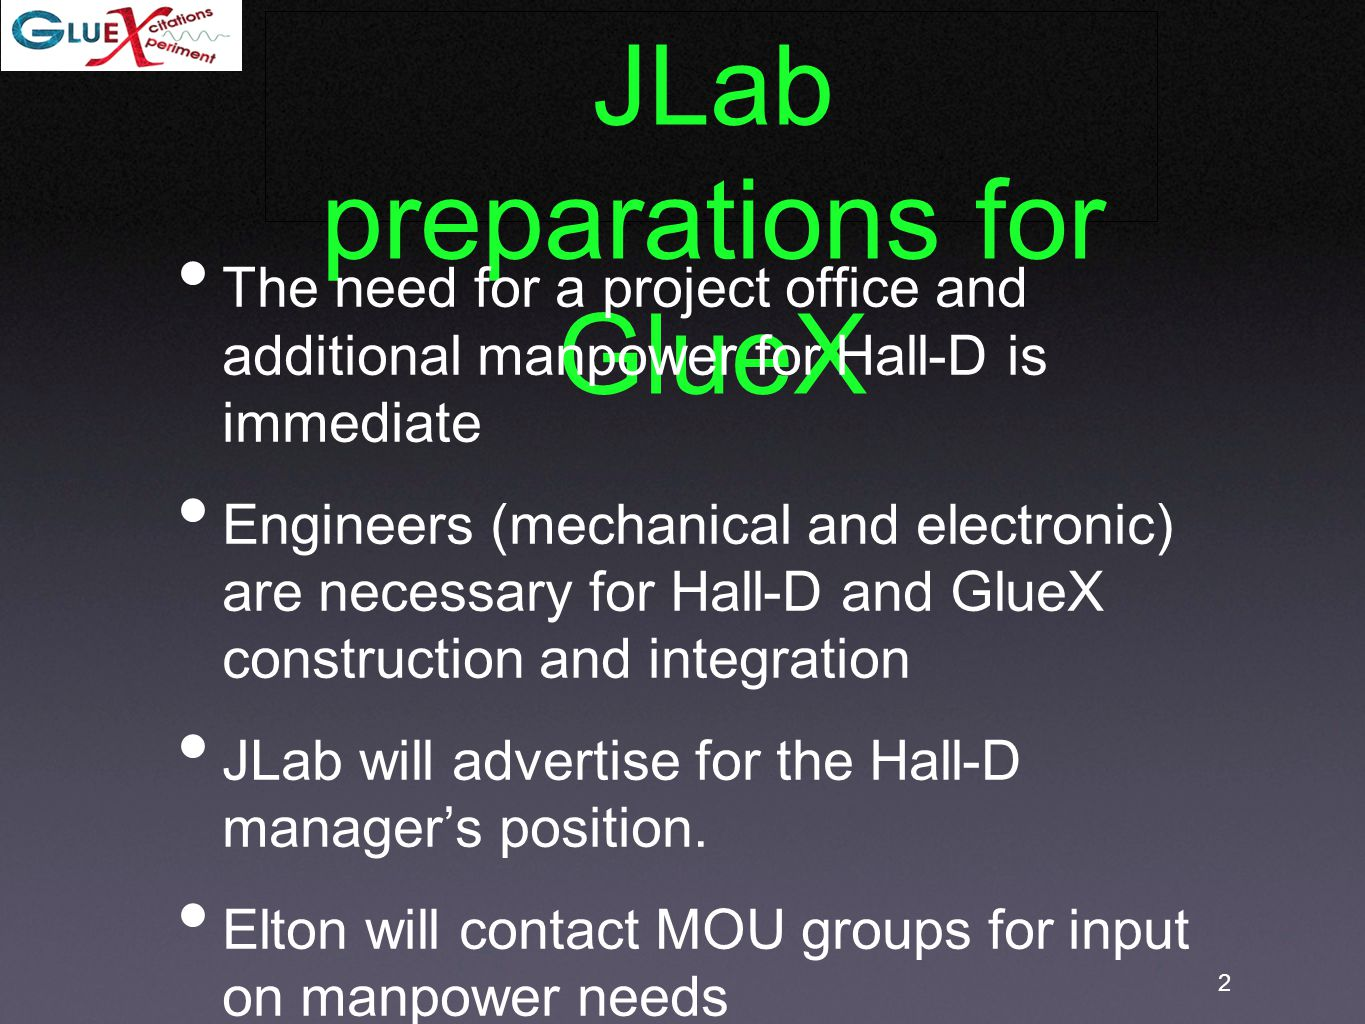 2 JLab preparations for GlueX The need for a project office and additional manpower for Hall-D is immediate Engineers (mechanical and electronic) are necessary for Hall-D and GlueX construction and integration JLab will advertise for the Hall-D manager's position.